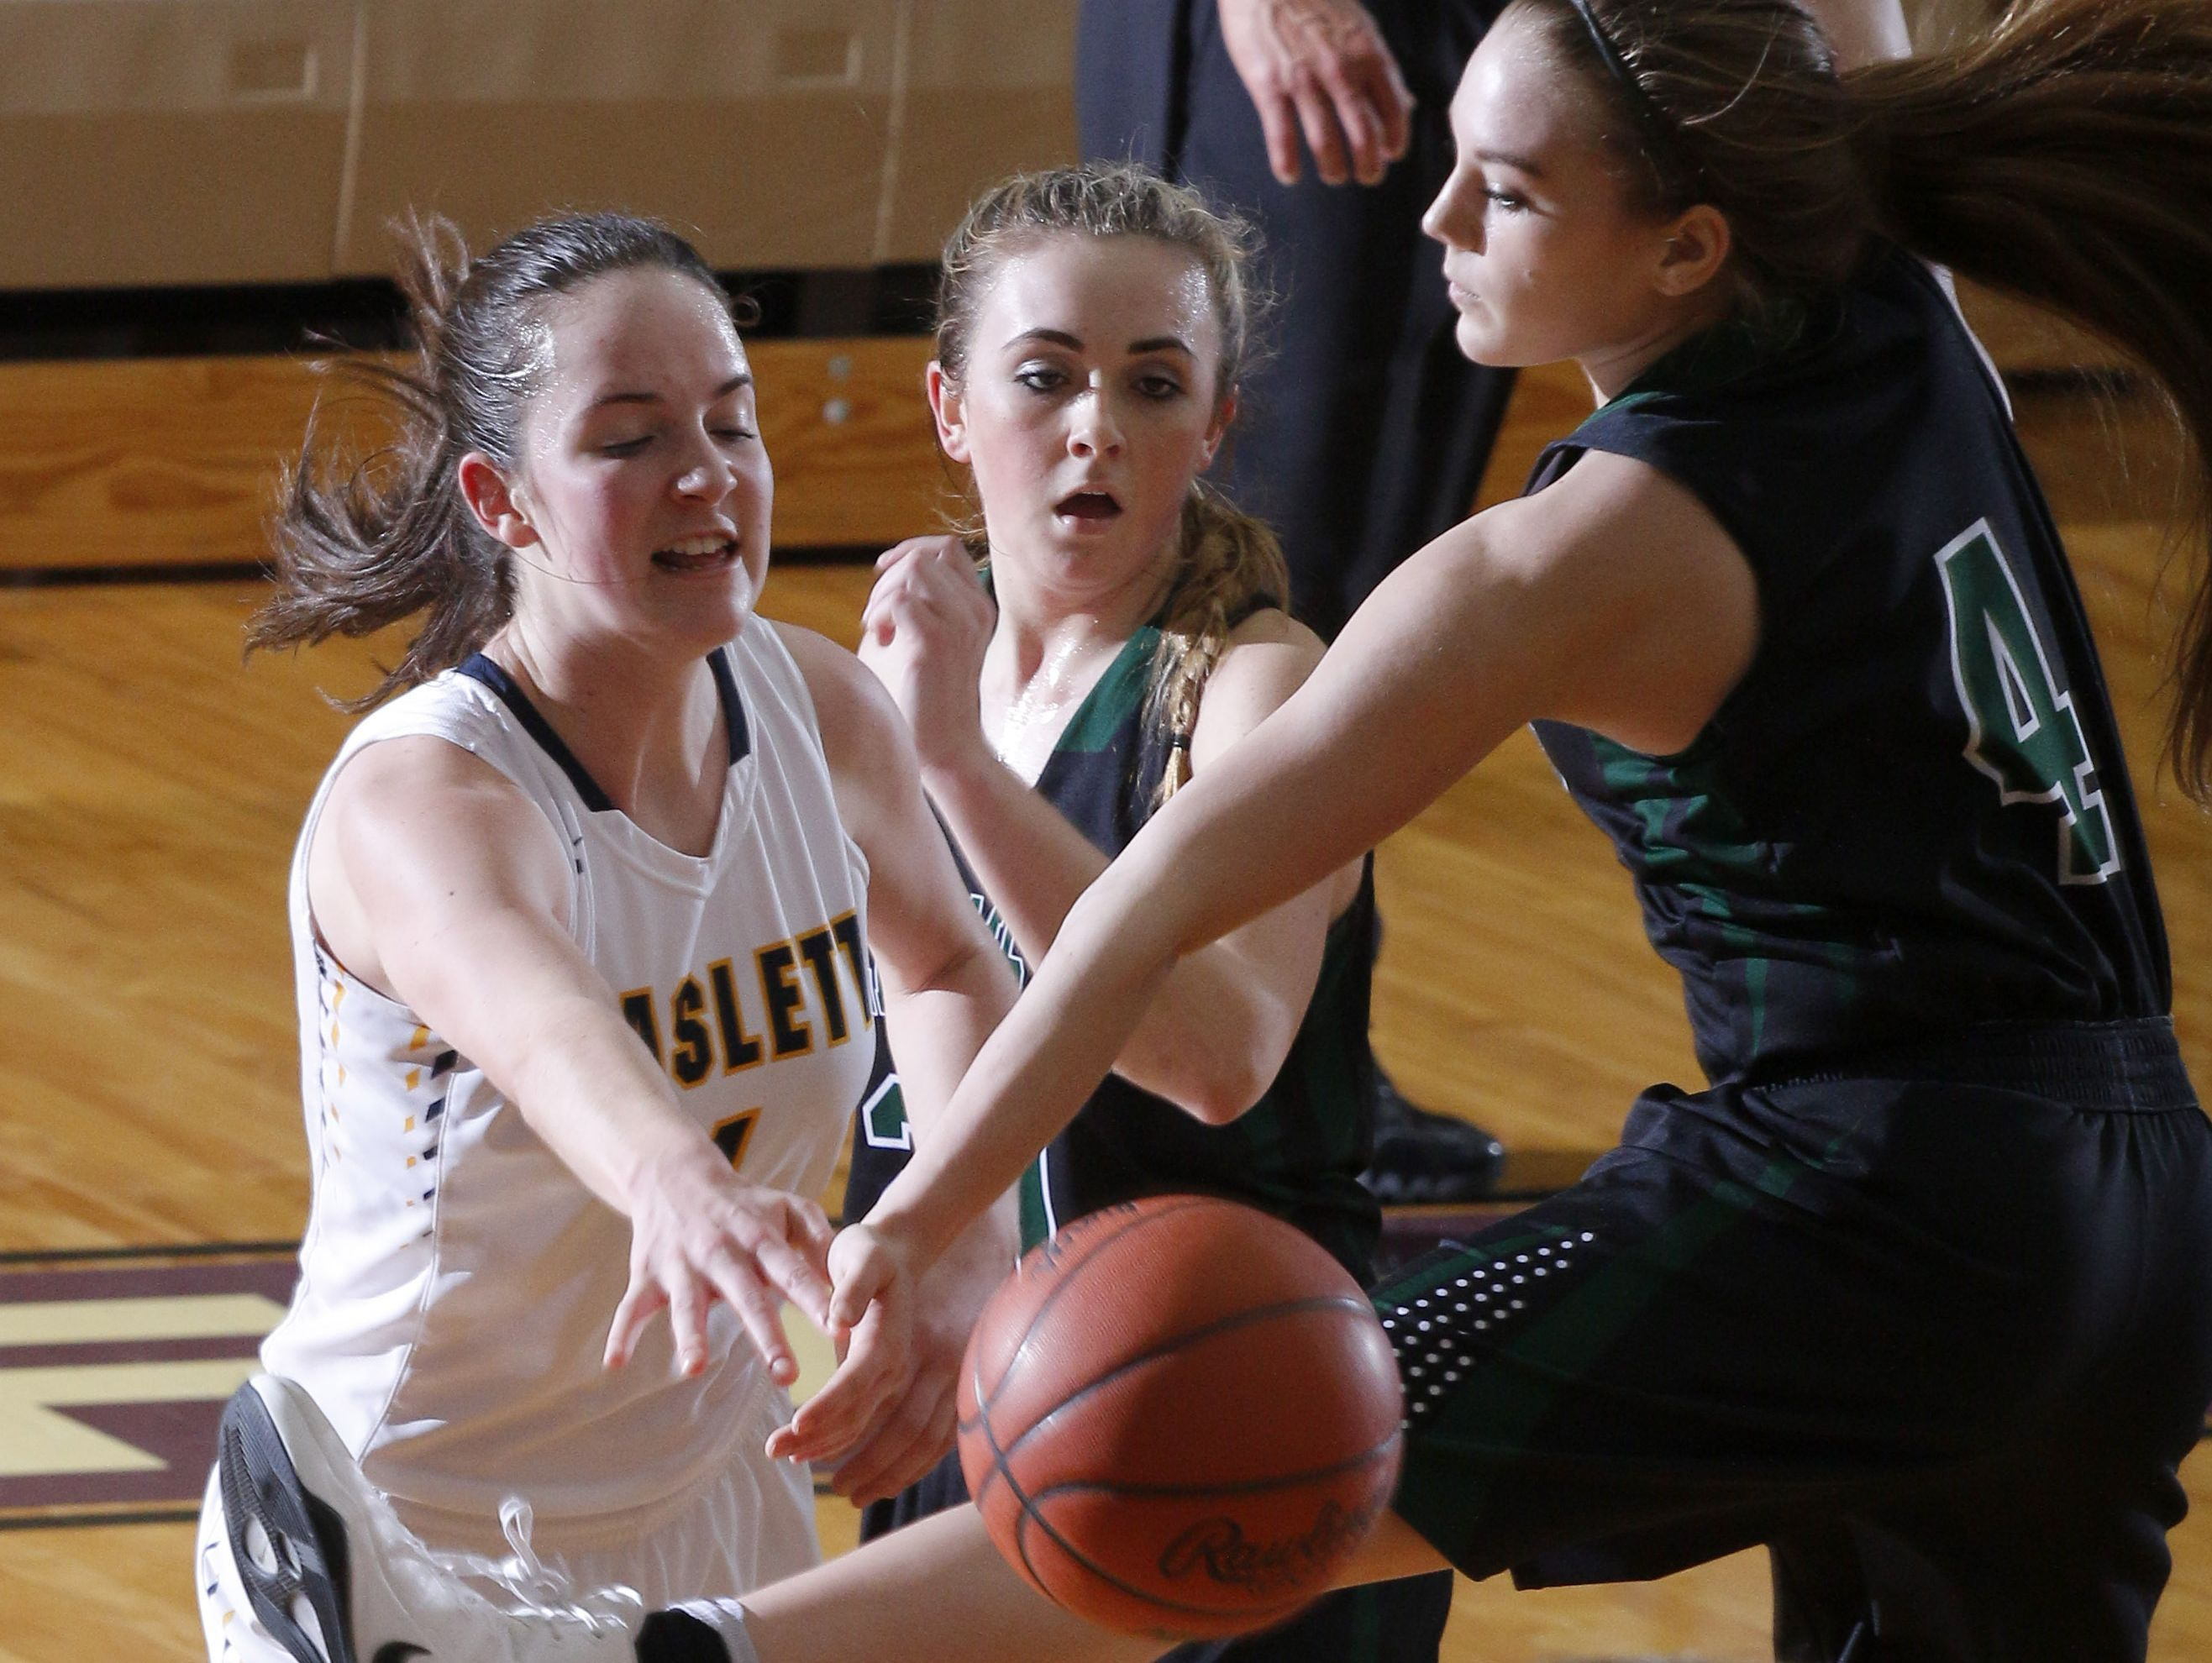 Williamston's Maddie Watters, right, tries to deflect a pass by Haslett's Ella McKinney, left, as Williamston's Halle Wisbiski, center, watches during their district semifinal game Wednesday, March 1, 2017, in Fowlerville, Mich. Williamston won 53-42.